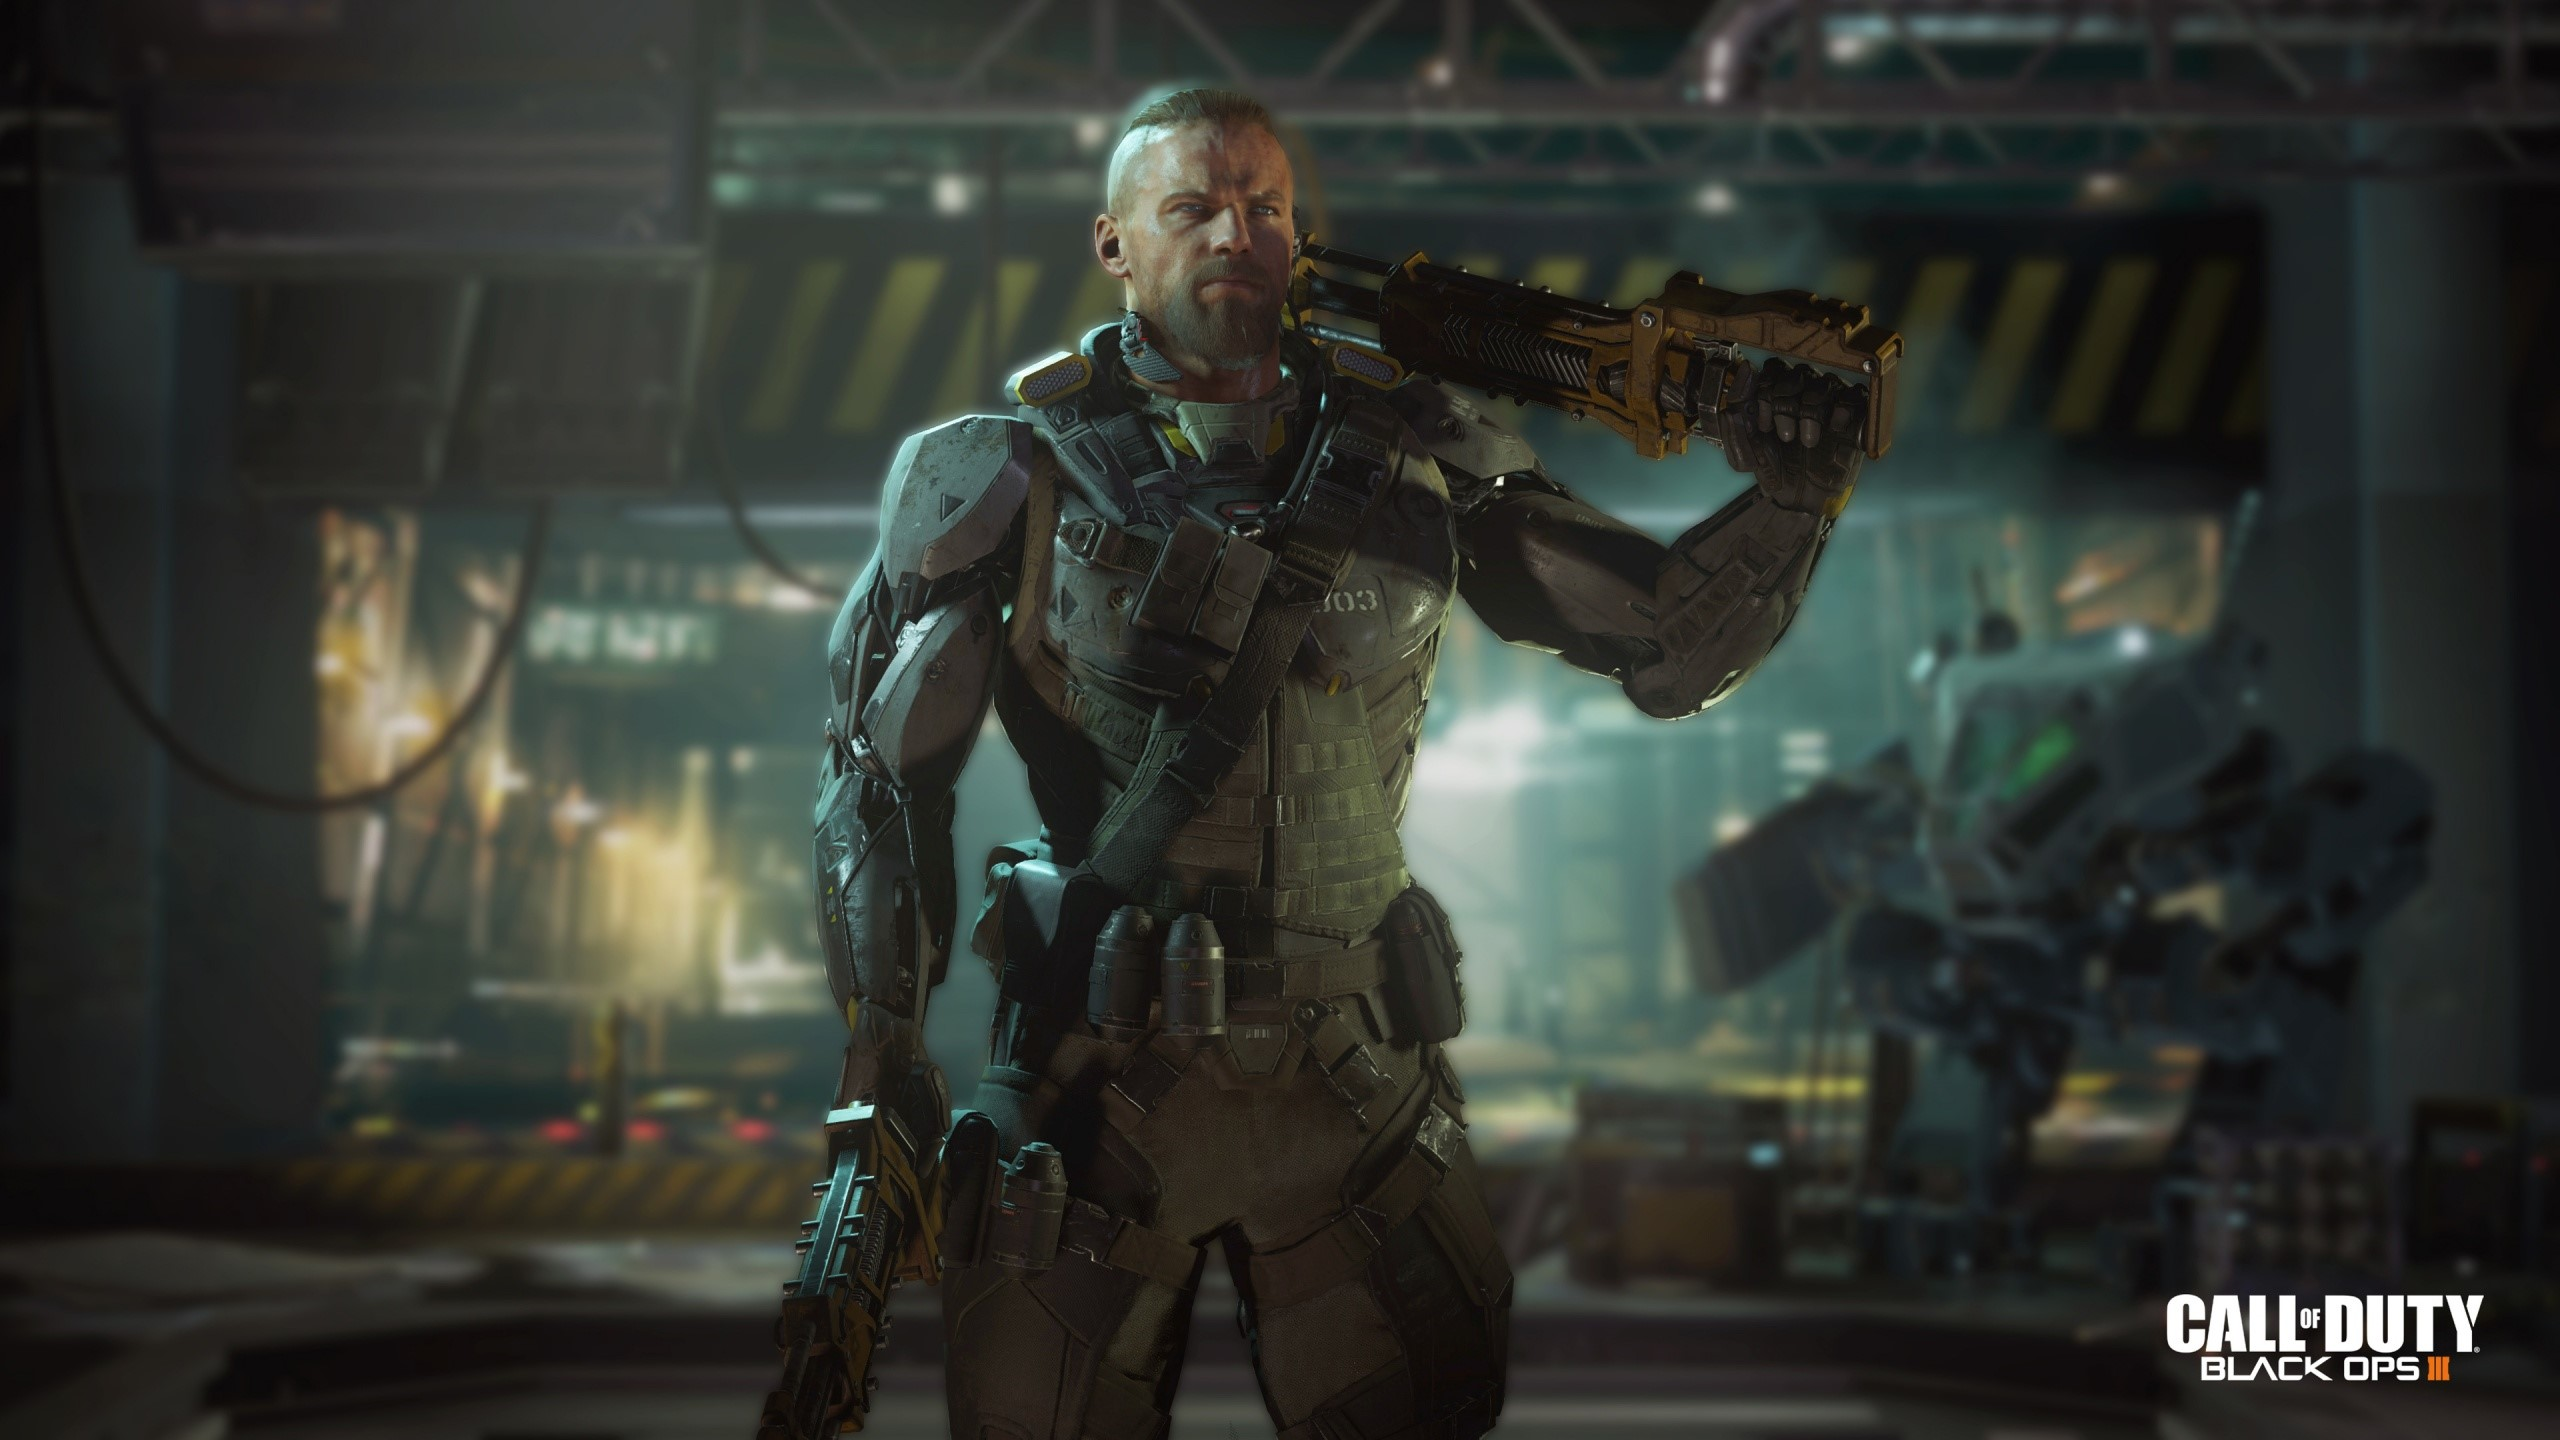 Call Of Duty Specialist Black Ops 3 Wallpaper 2k Quad Hd Id 2139